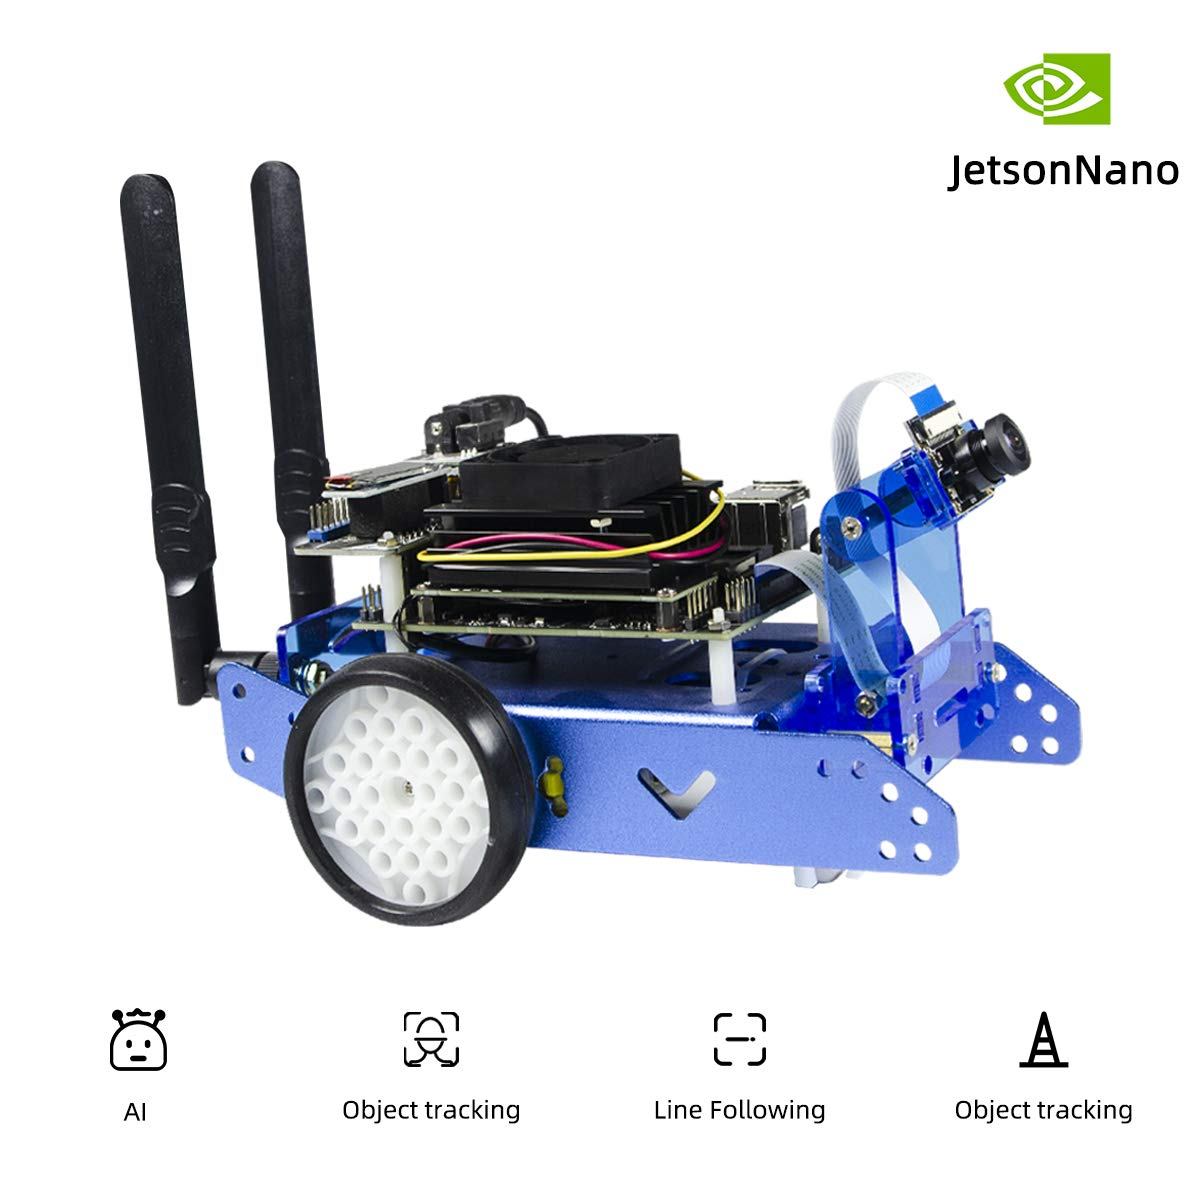 JetBot AI Kit Accessories Add-ons Compatible with NVIDIA Jetson Nano Developer Kit to Build JetBot